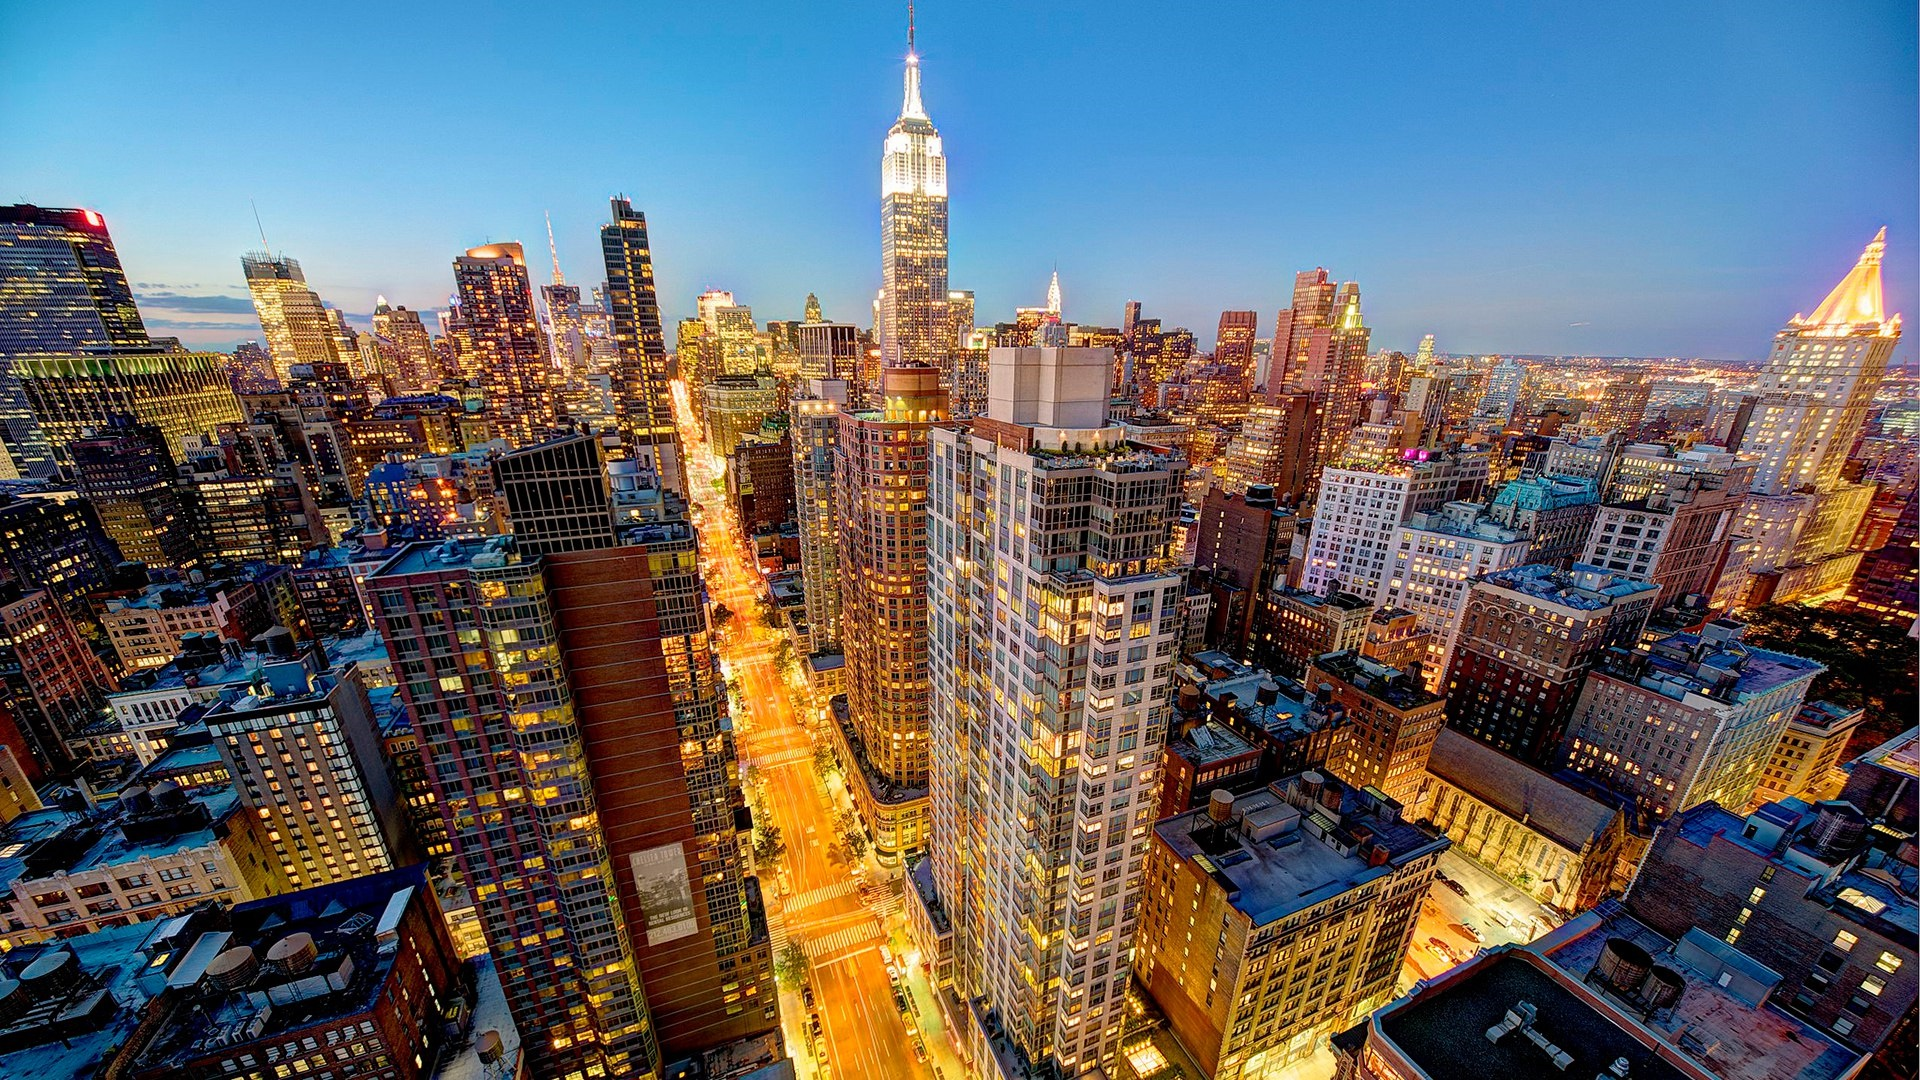 Empire State Building, New York wallpaper